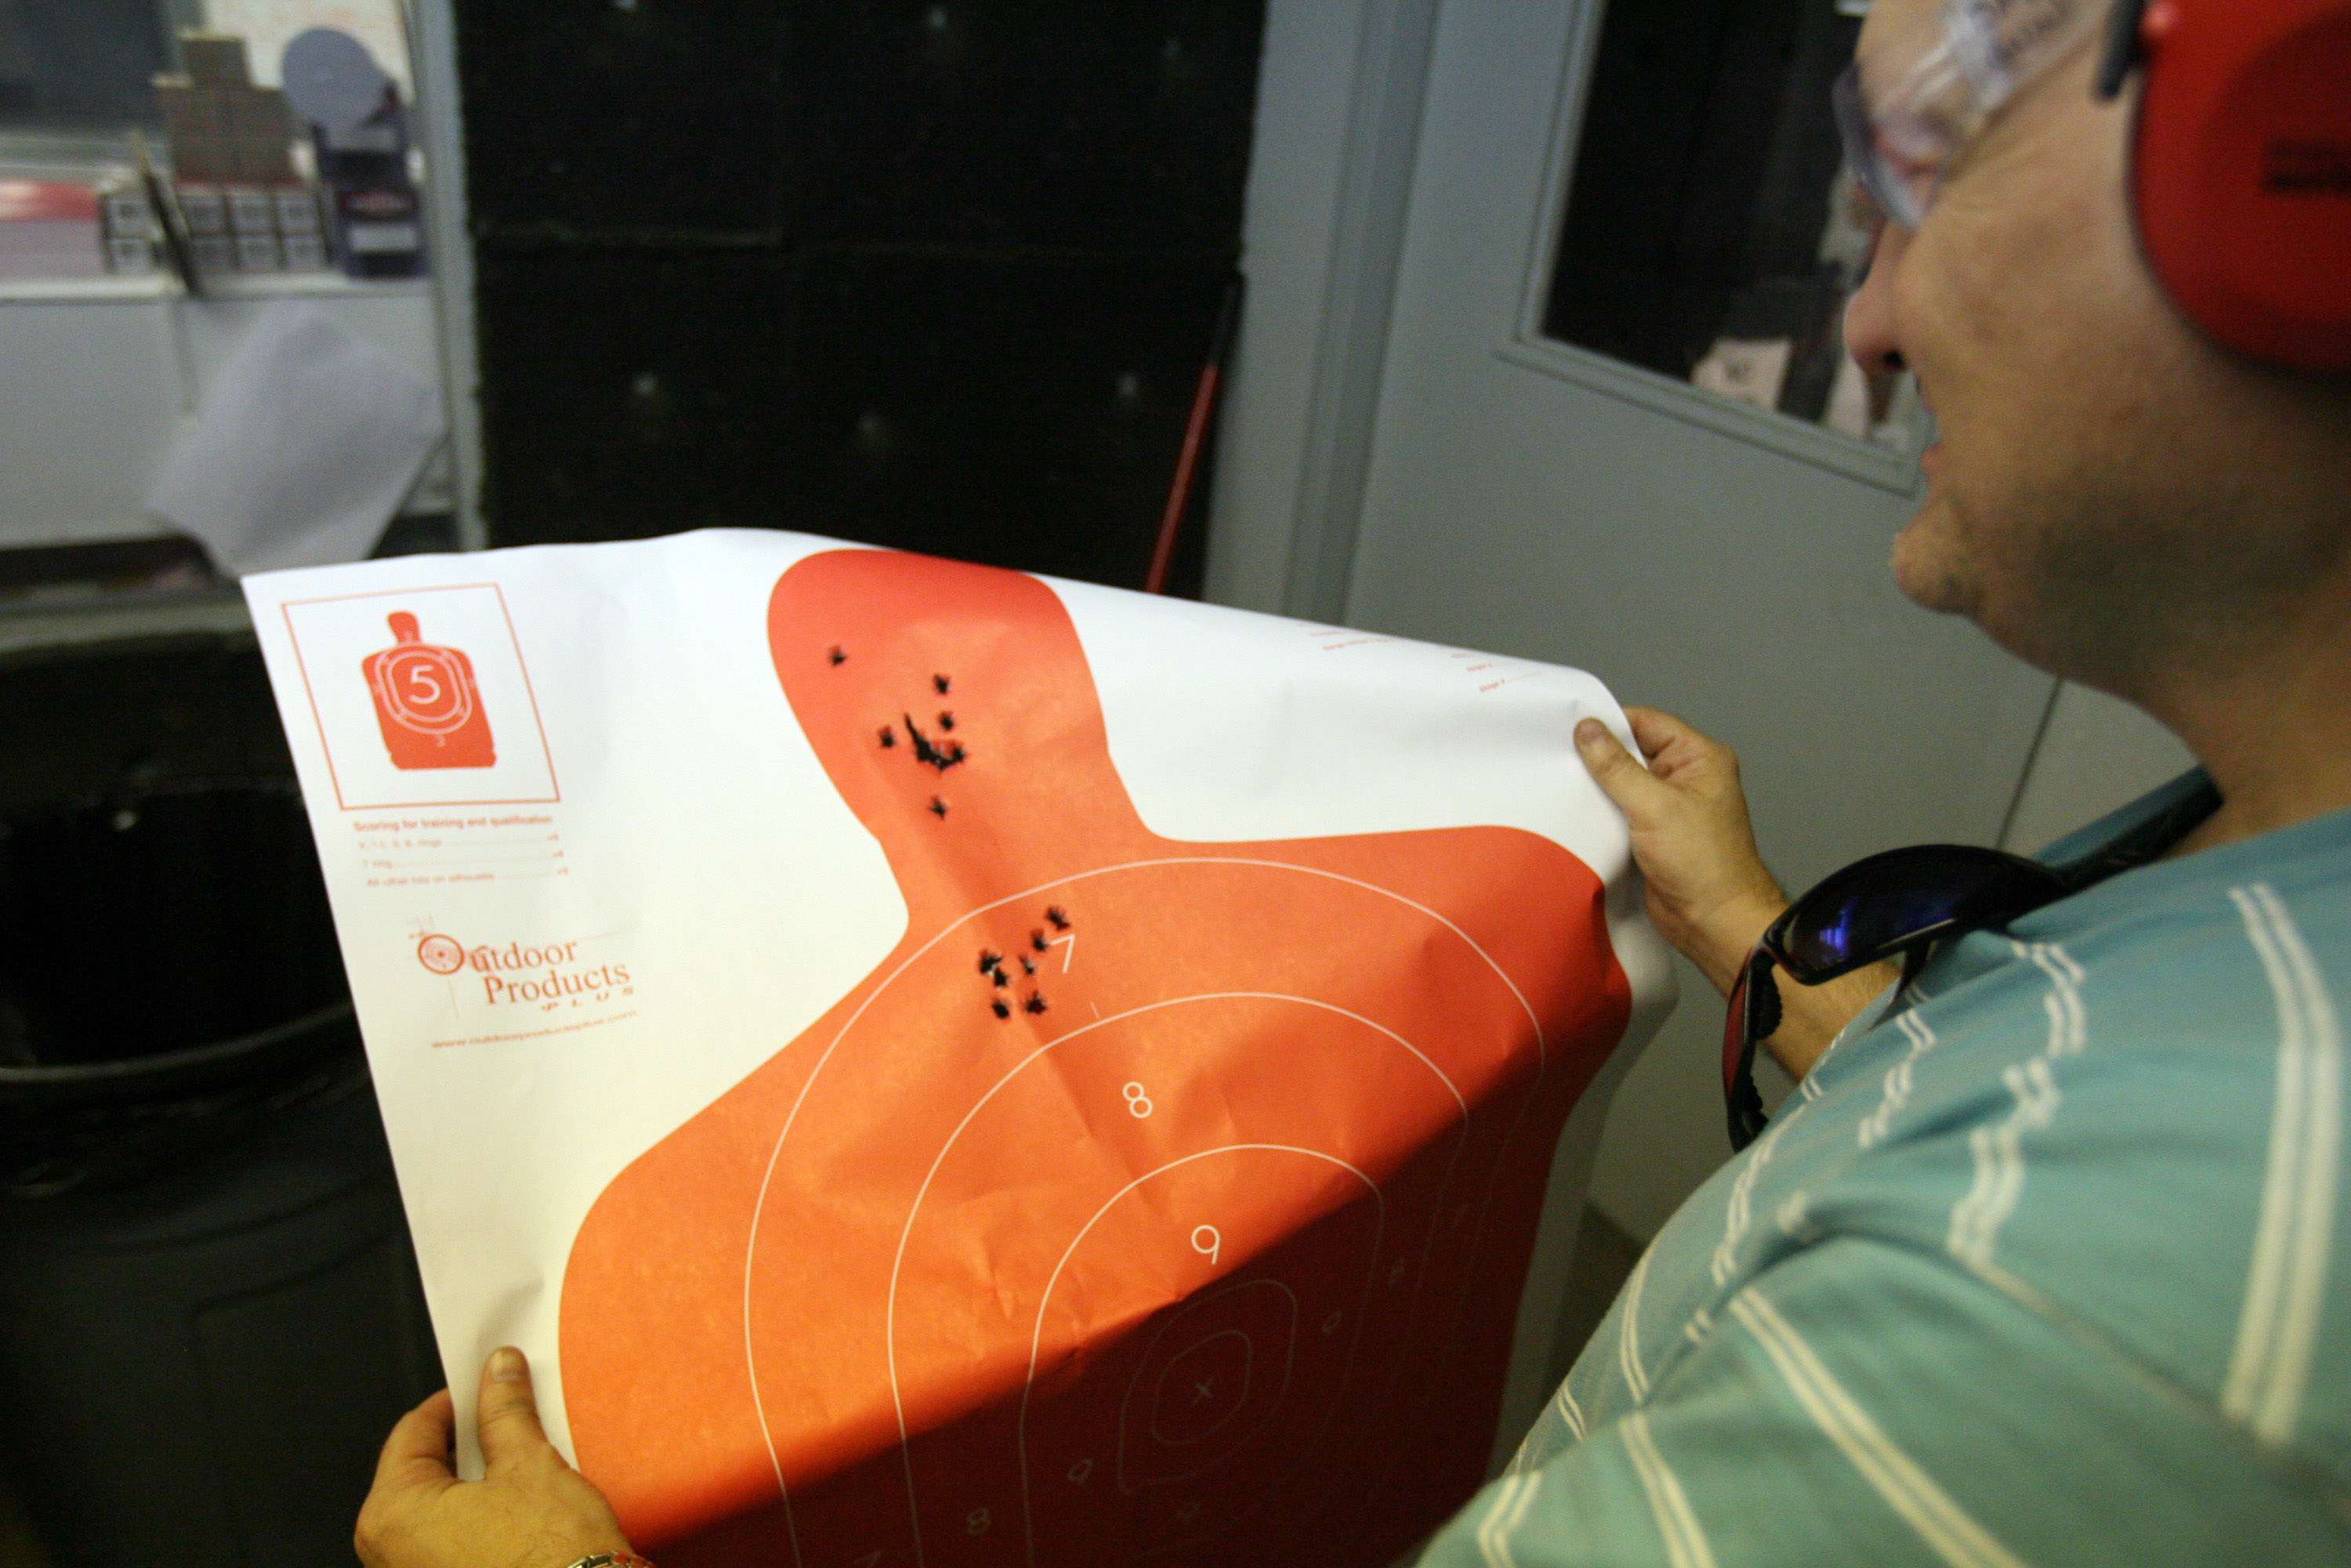 John Sanders of Irving, TX, checks his target after shooting his glock pistol June 26th at the DFW Gun Range and Training Center in Dallas, Texas. (Rick Gershon/Getty Images)